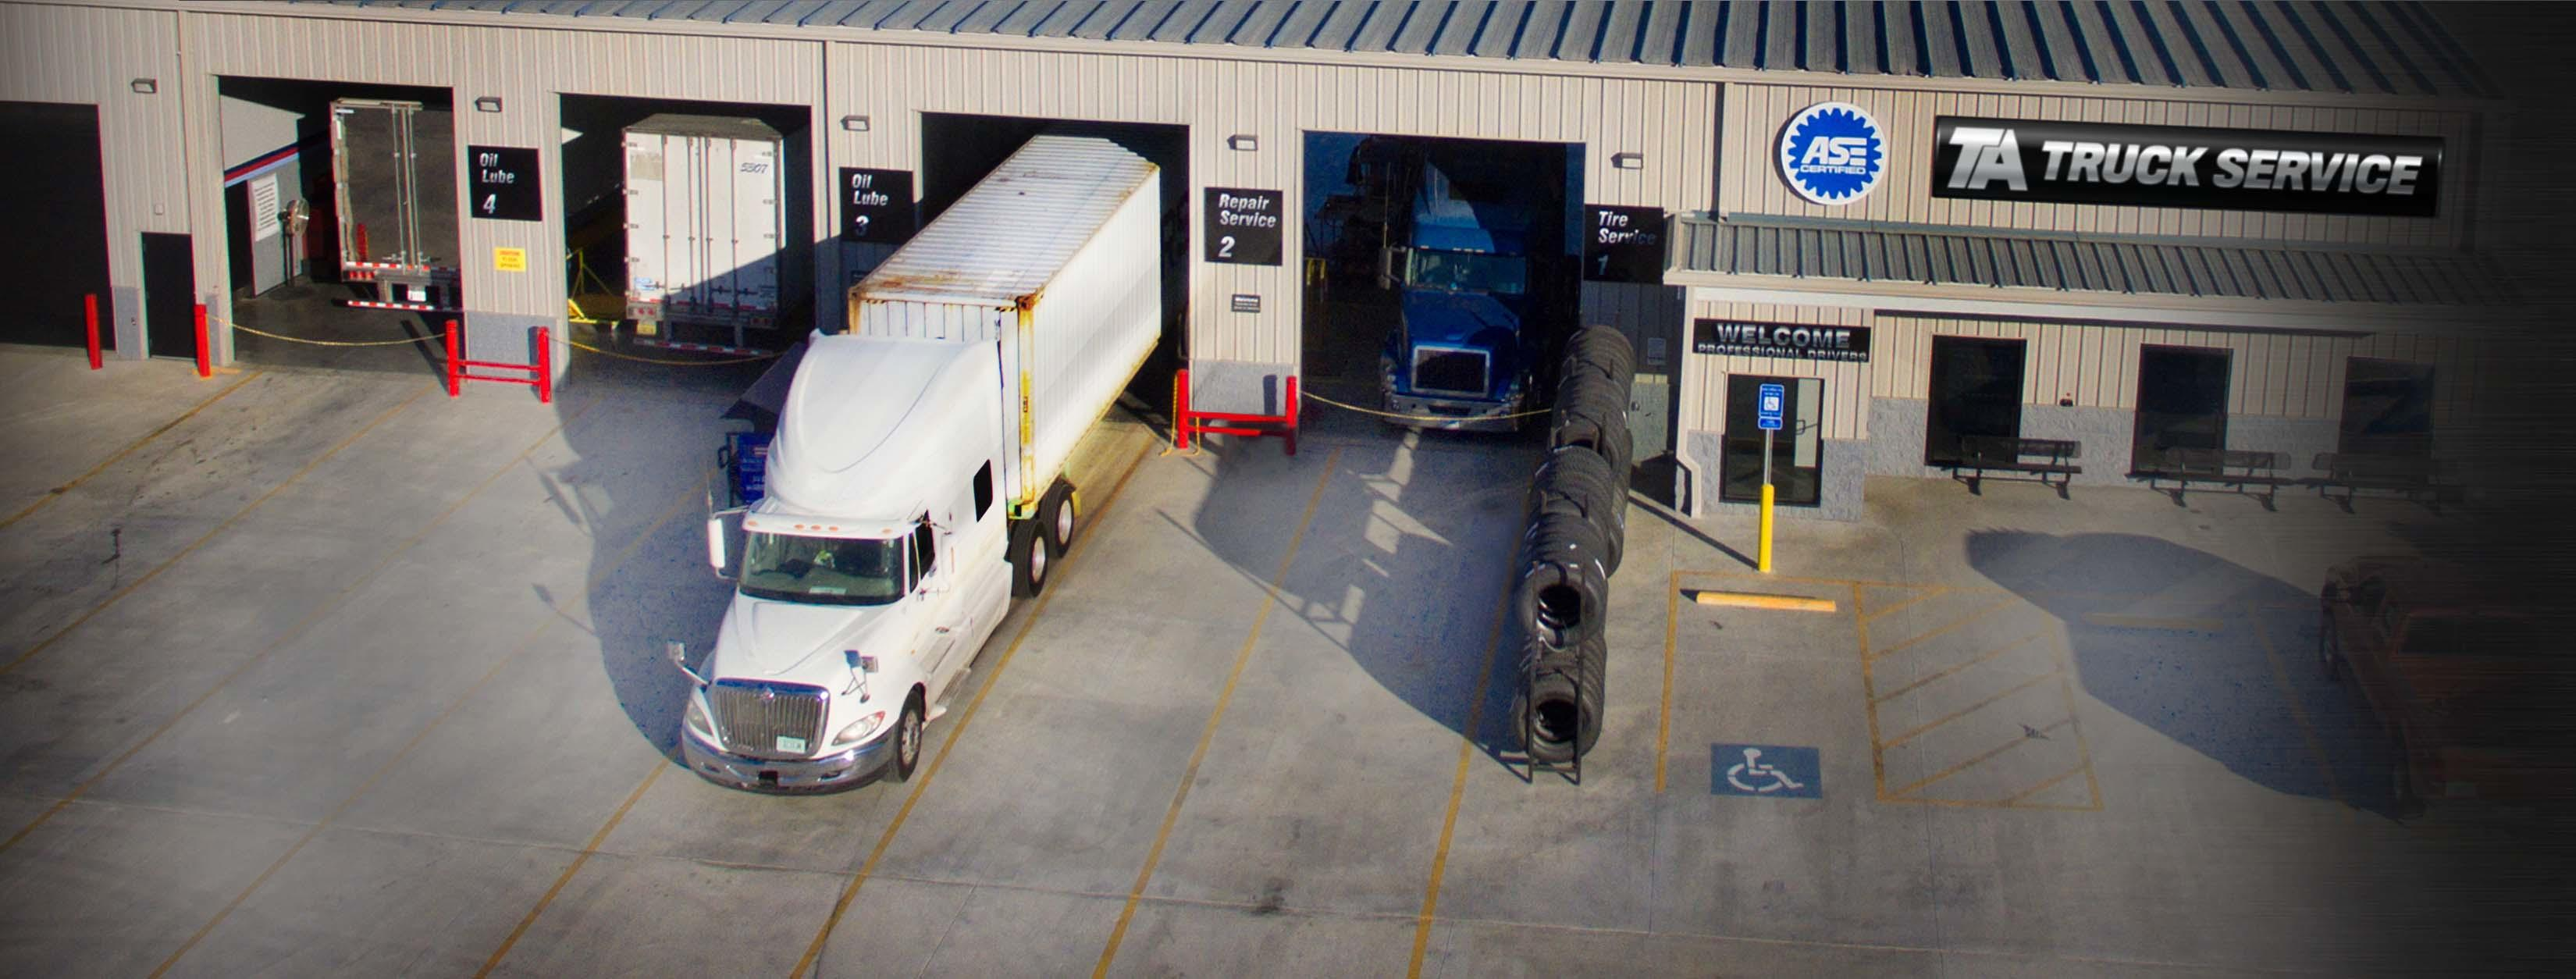 image of the TA Truck Service